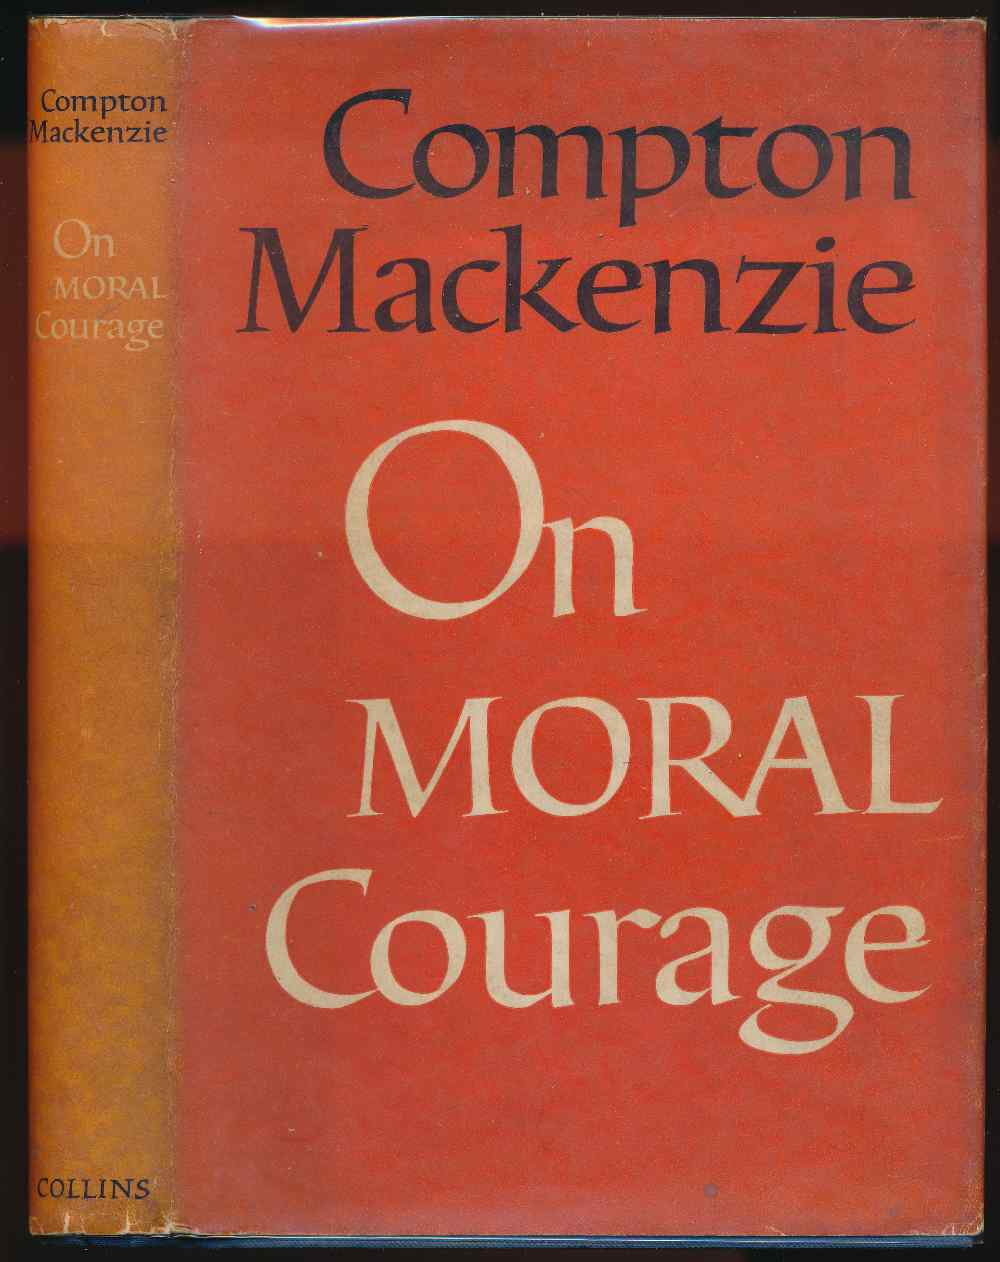 On moral courage